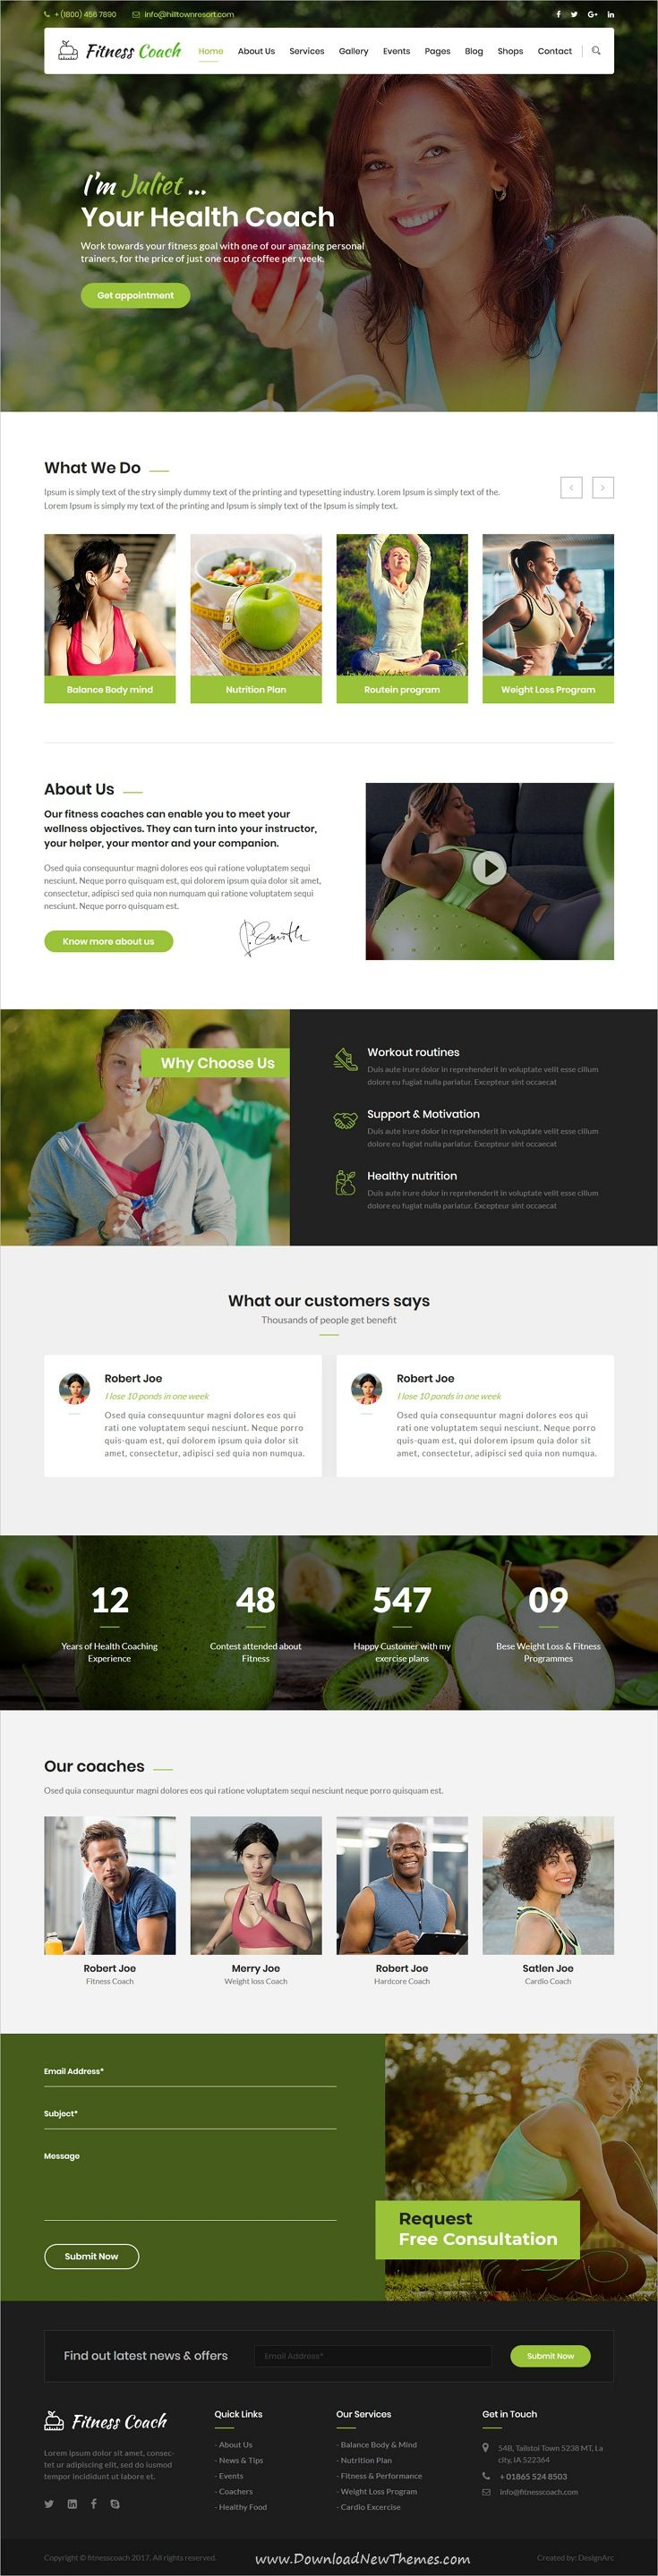 Fitness Coach Is Clean And Modern Design 5in1 Responsive Bootstrap Theme For Health Fitness An In 2020 Personal Trainer Website Coach Website Online Fitness Trainer